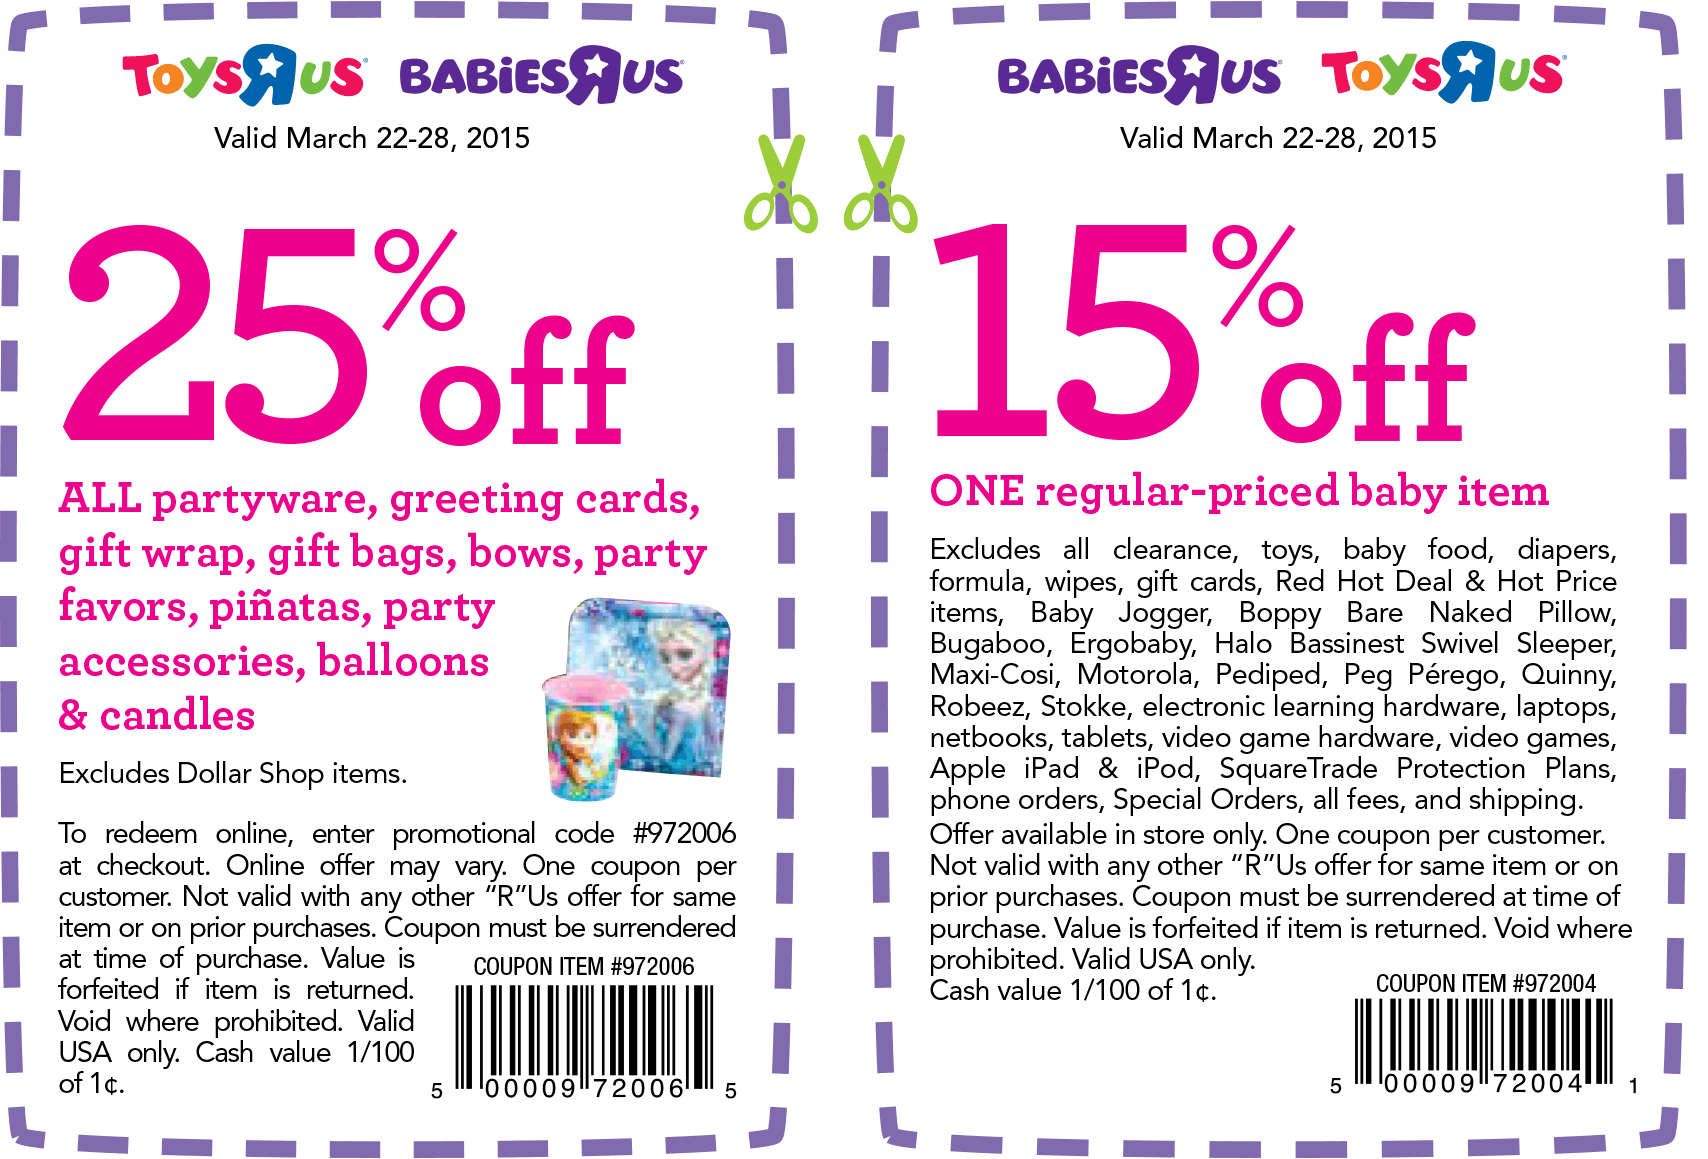 Toys R Us Coupon May 2017 25% off partyware & more at Toys R Us & Babies R Us, or online via promo code 972006